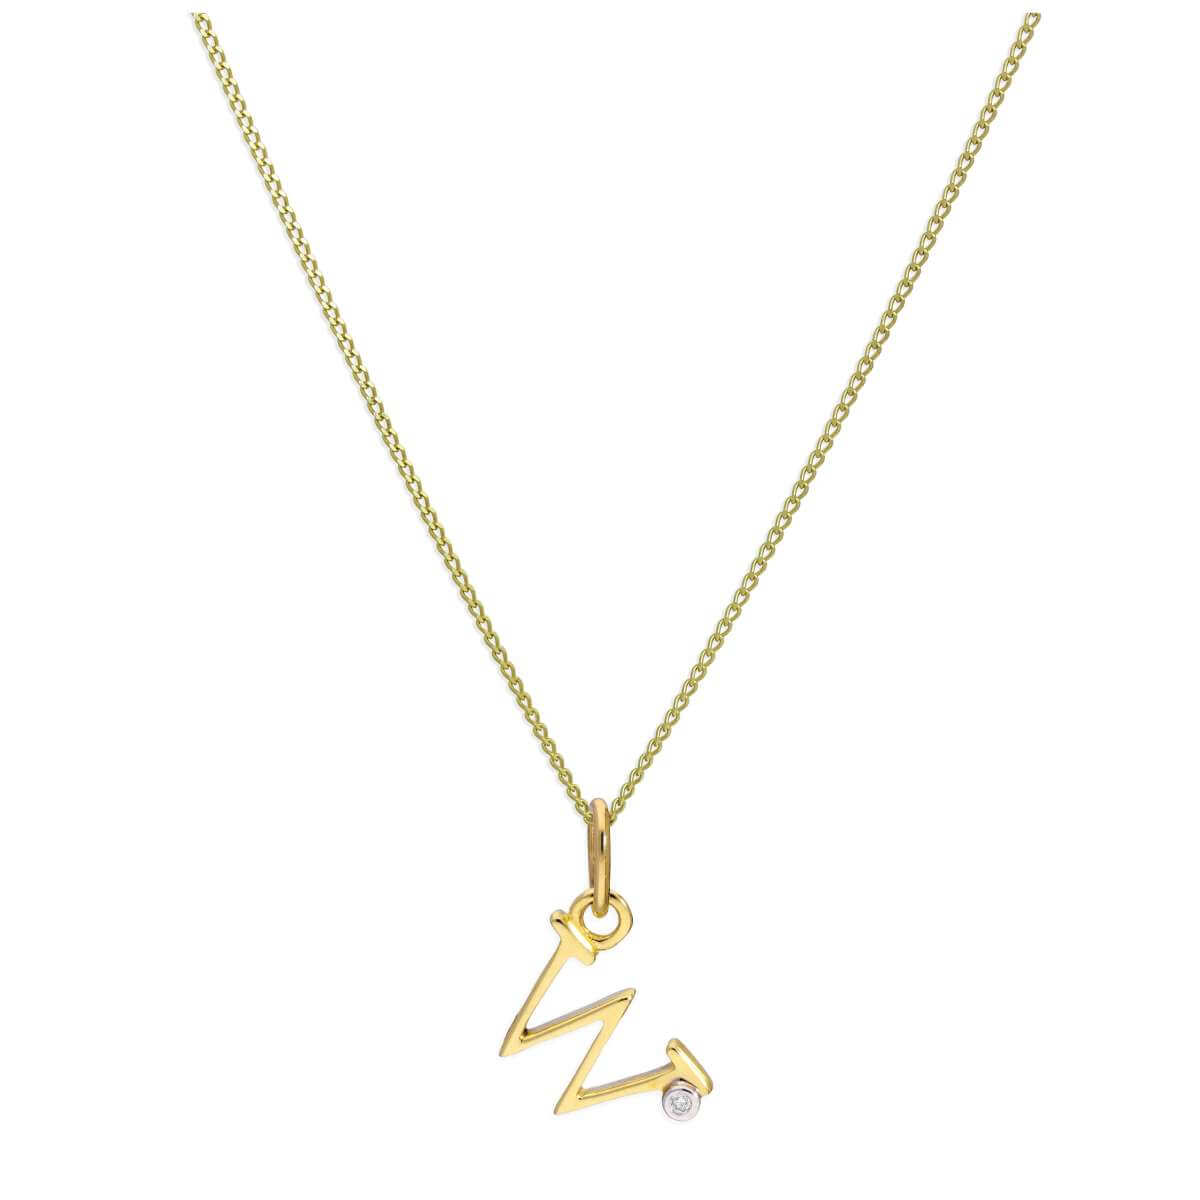 9ct Yellow Gold Single Stone Diamond 0.4 points Letter W Necklace Pendant 16 - 20 Inches